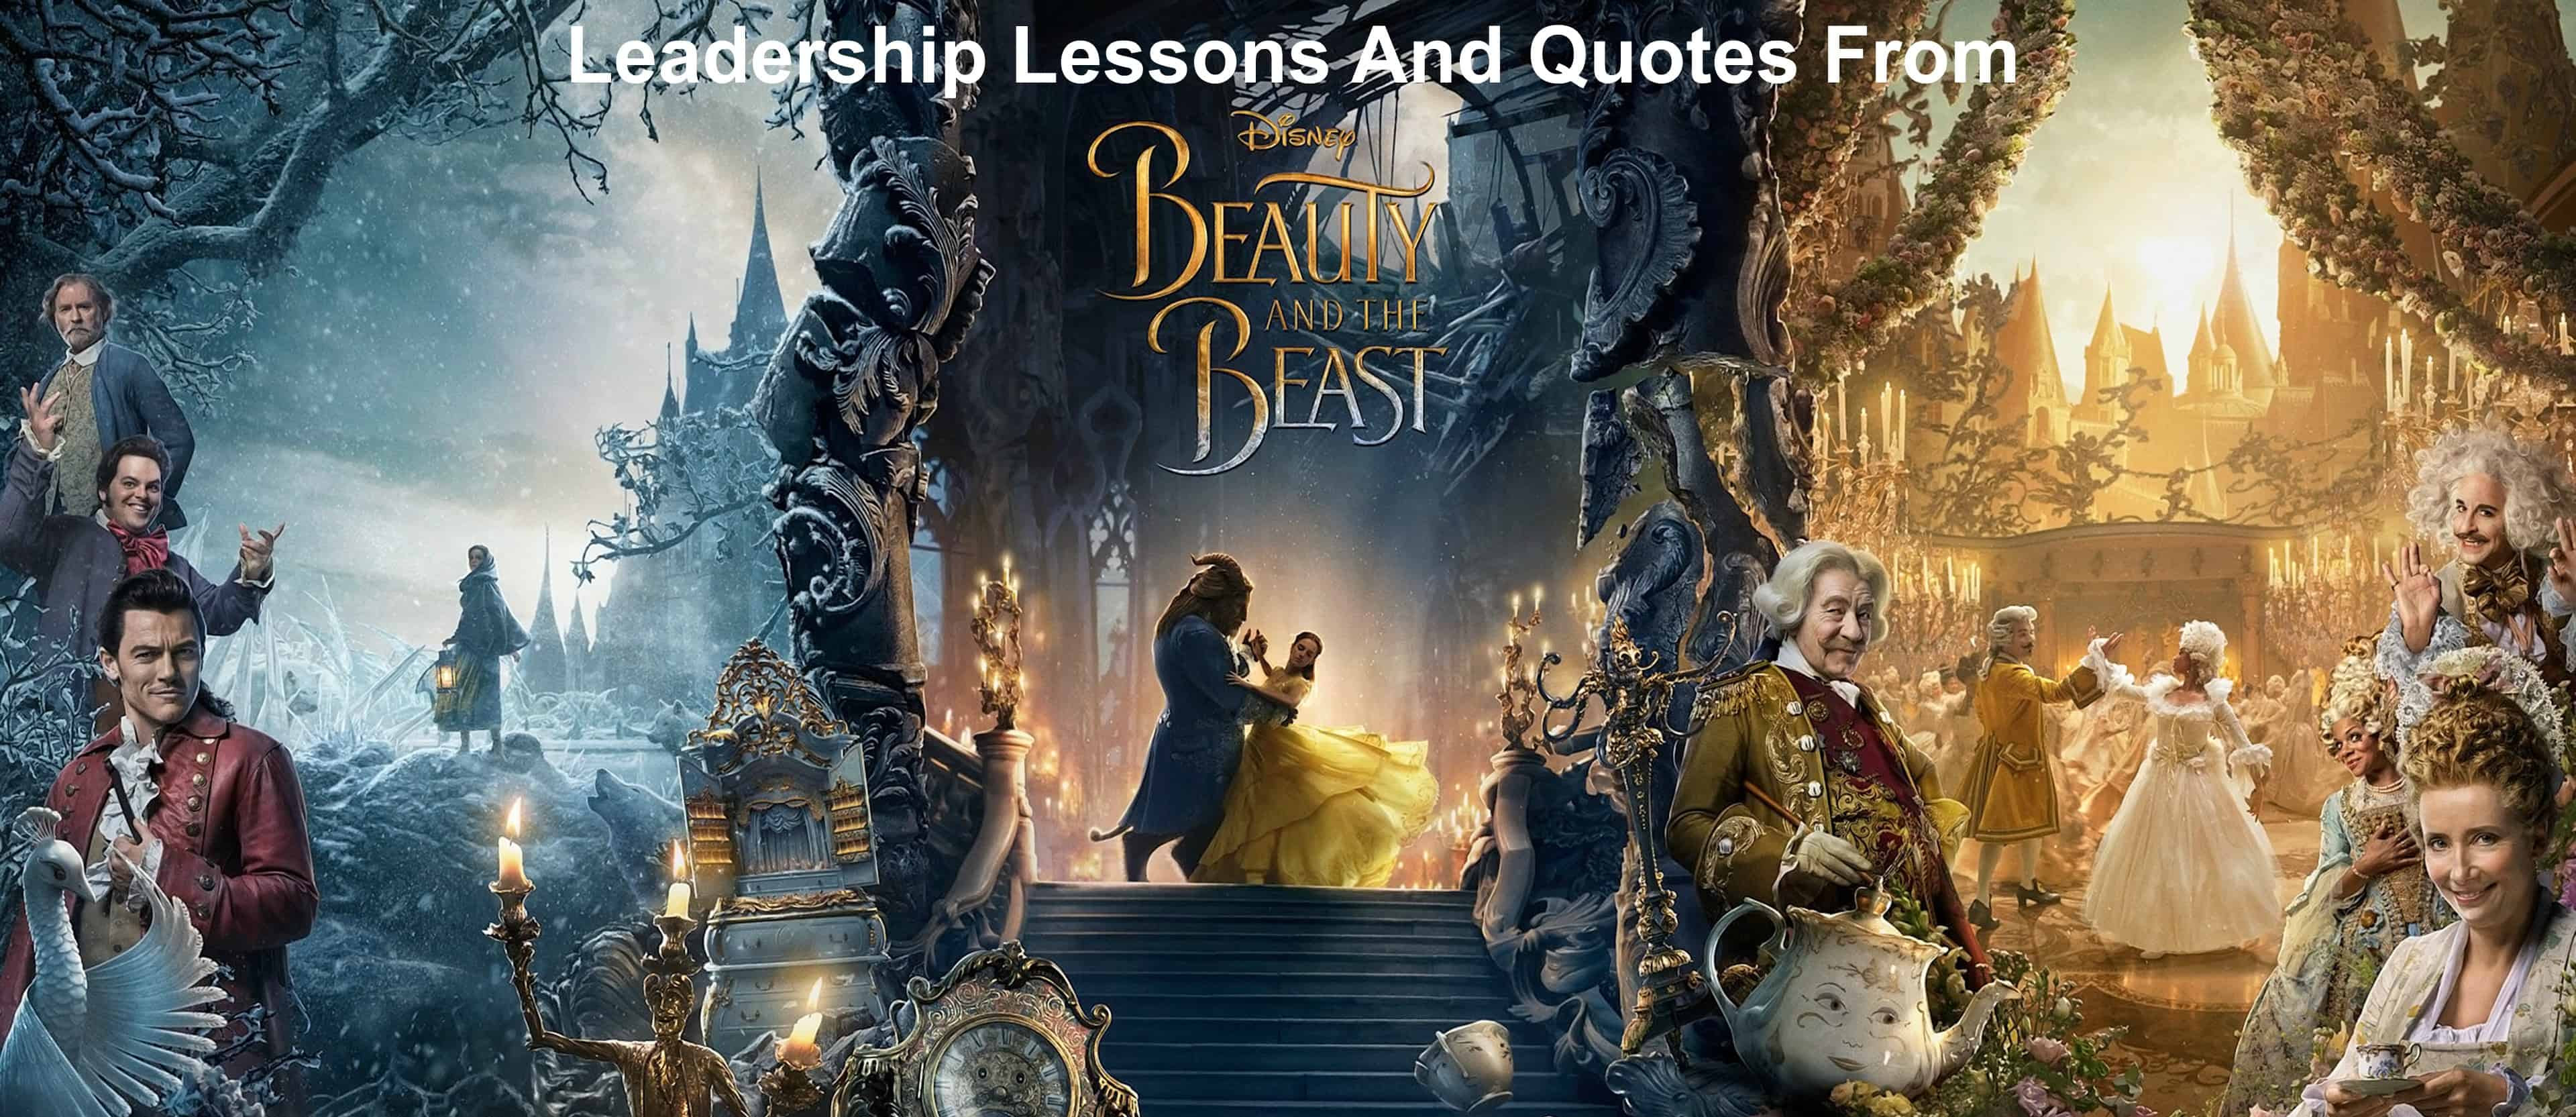 Leadership Lessons And Quotes From Beauty And The Beast 2017